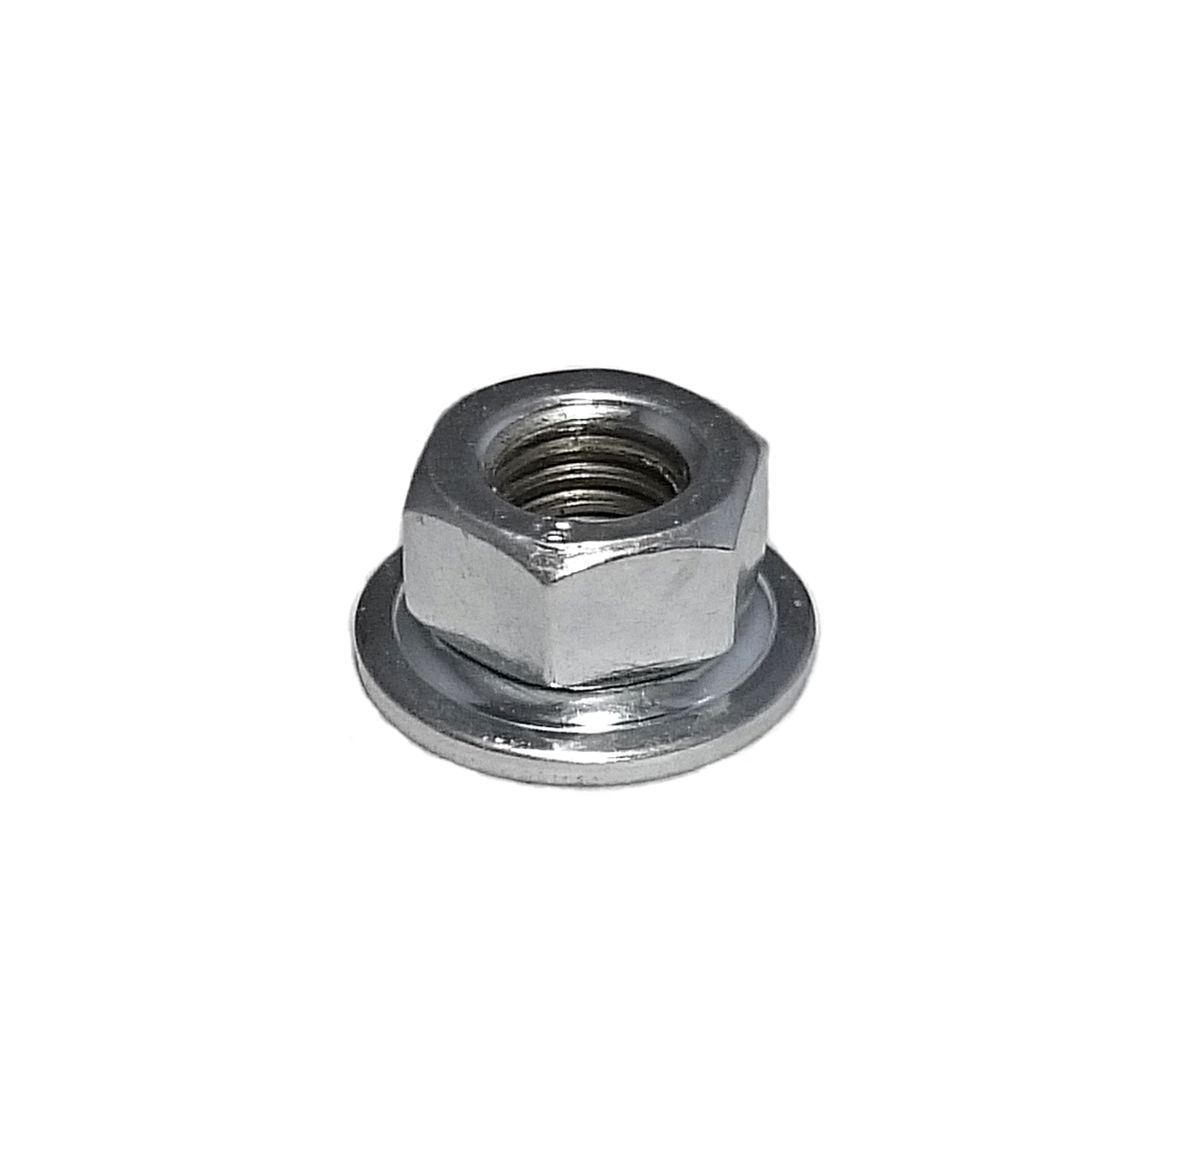 Blade Nut, Kawasaki KBL23A, KBH26A, KBL26A, KBH27A, KBL27A Trimmer, Brush  Cutter Part 92210-2053, Left Hand Thread